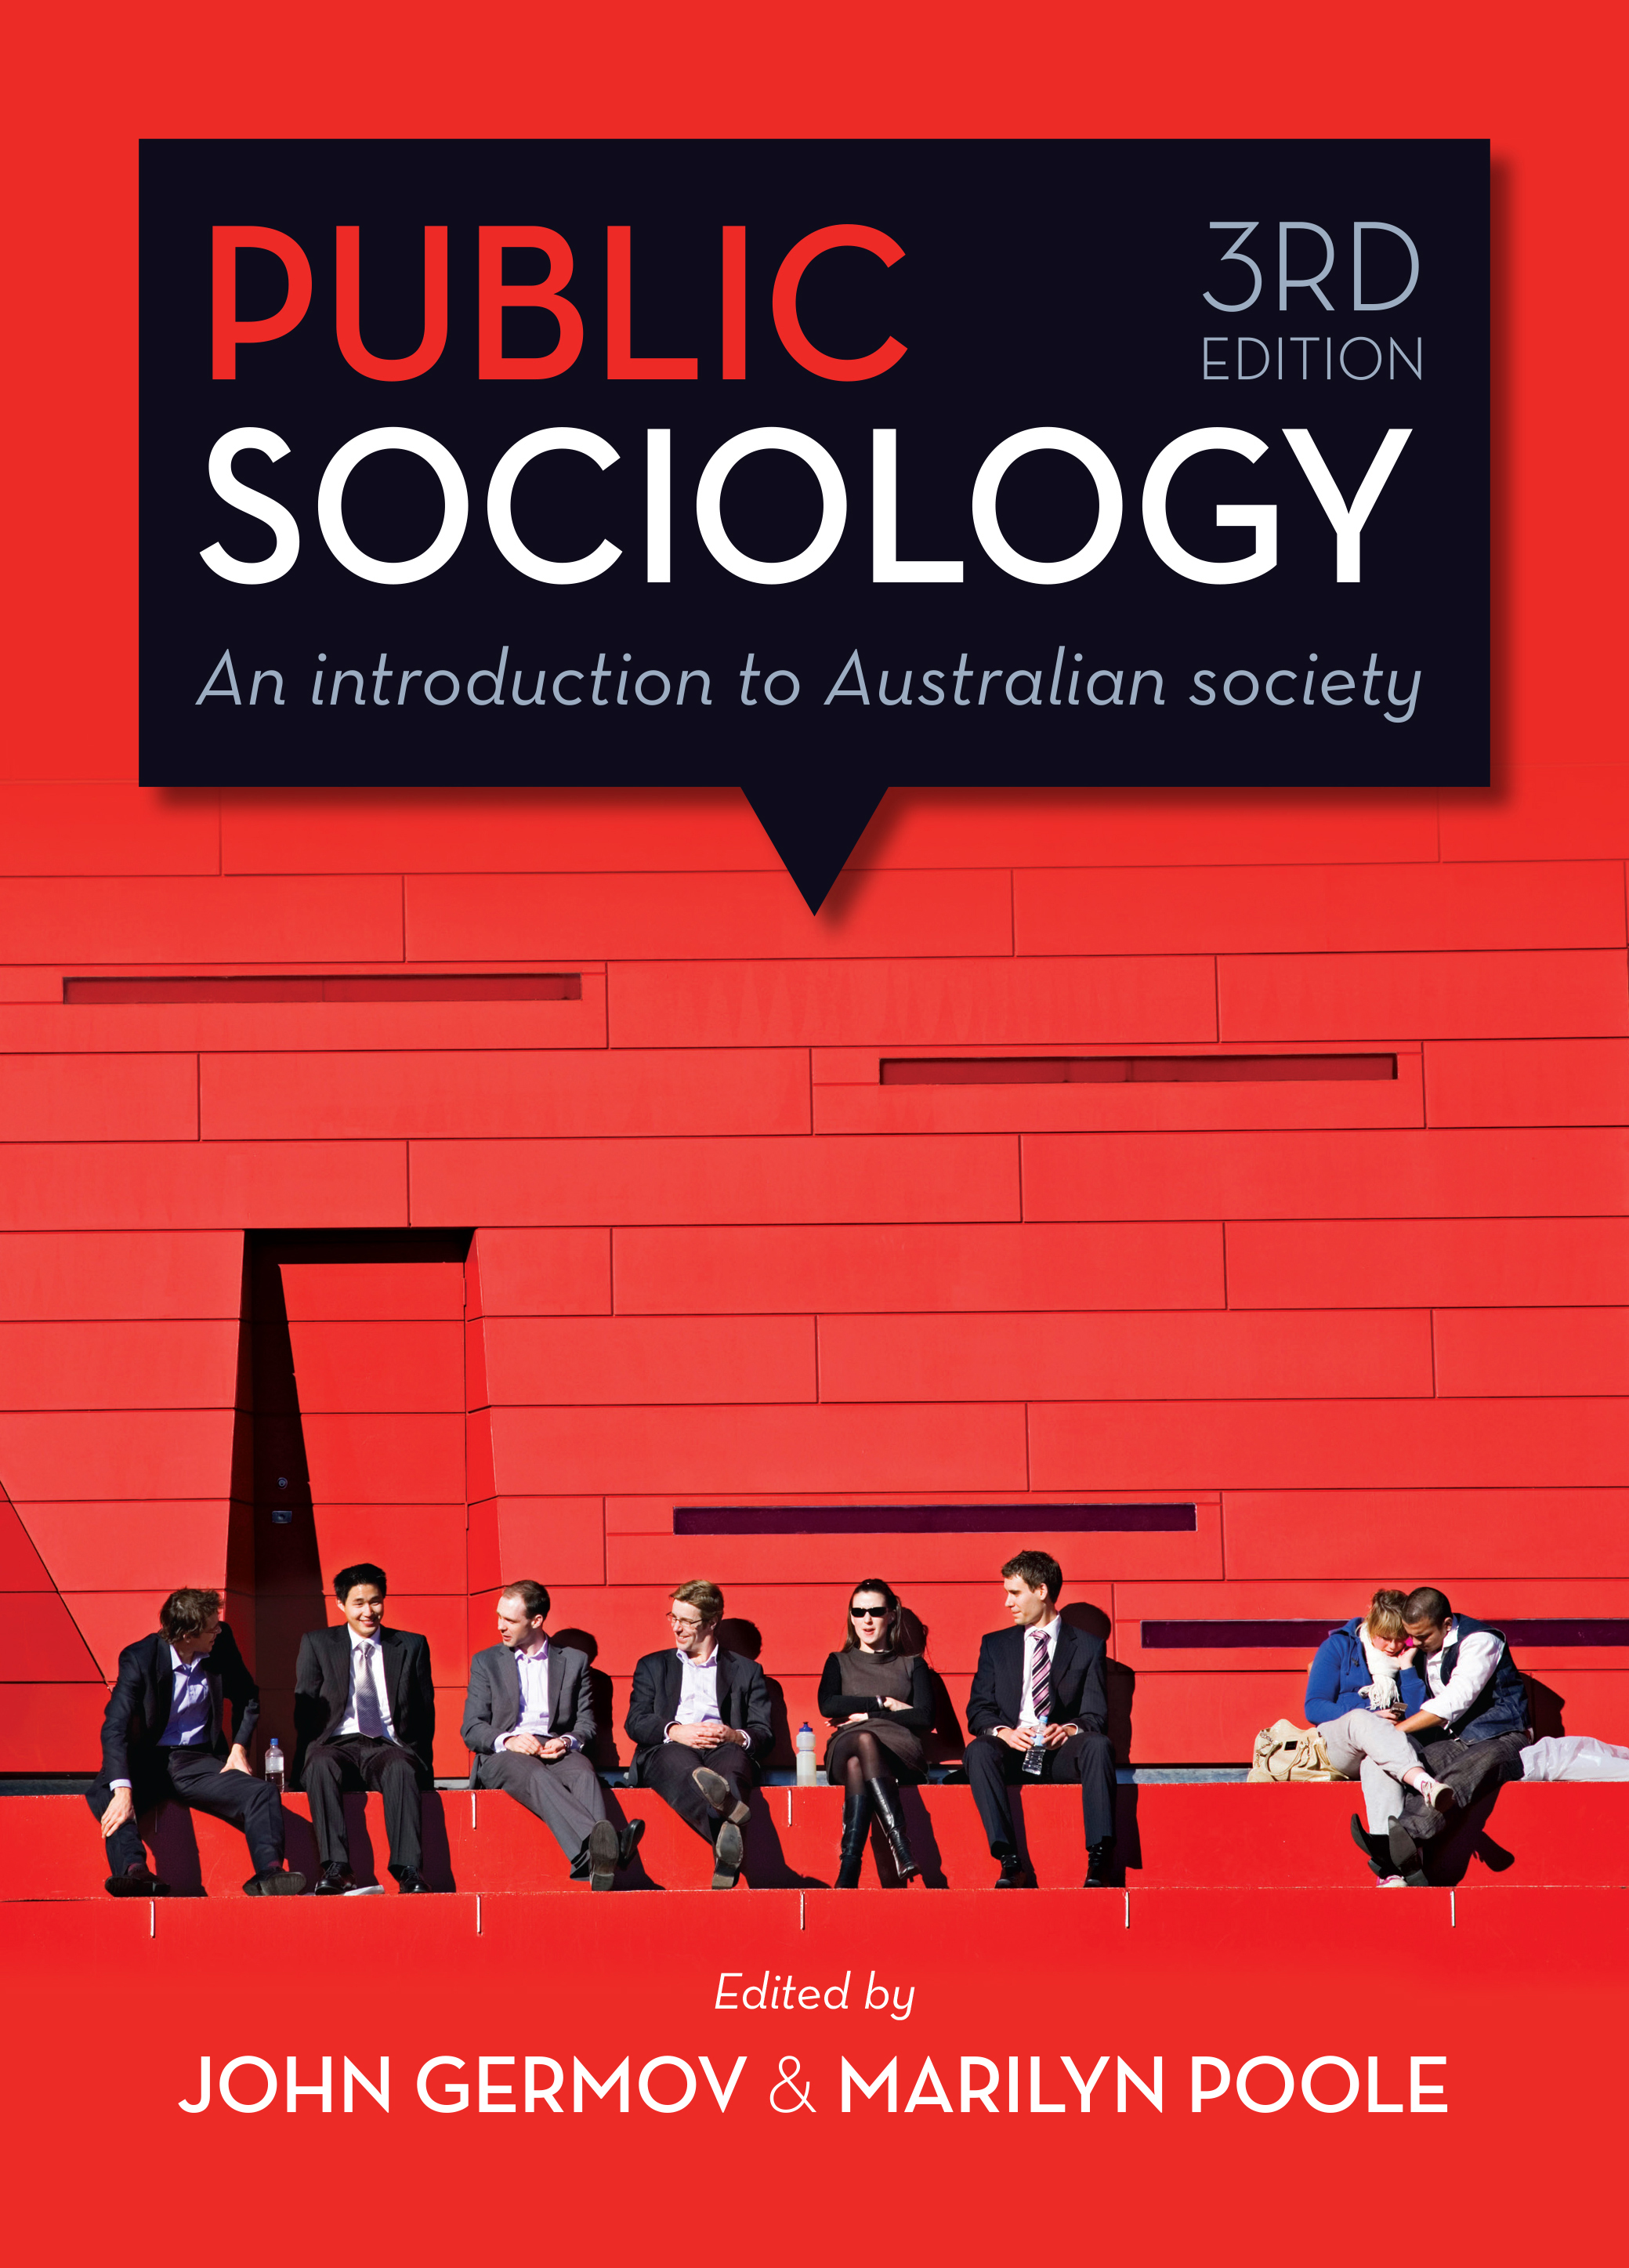 public sociology edited by john germov and marilyn poole cover